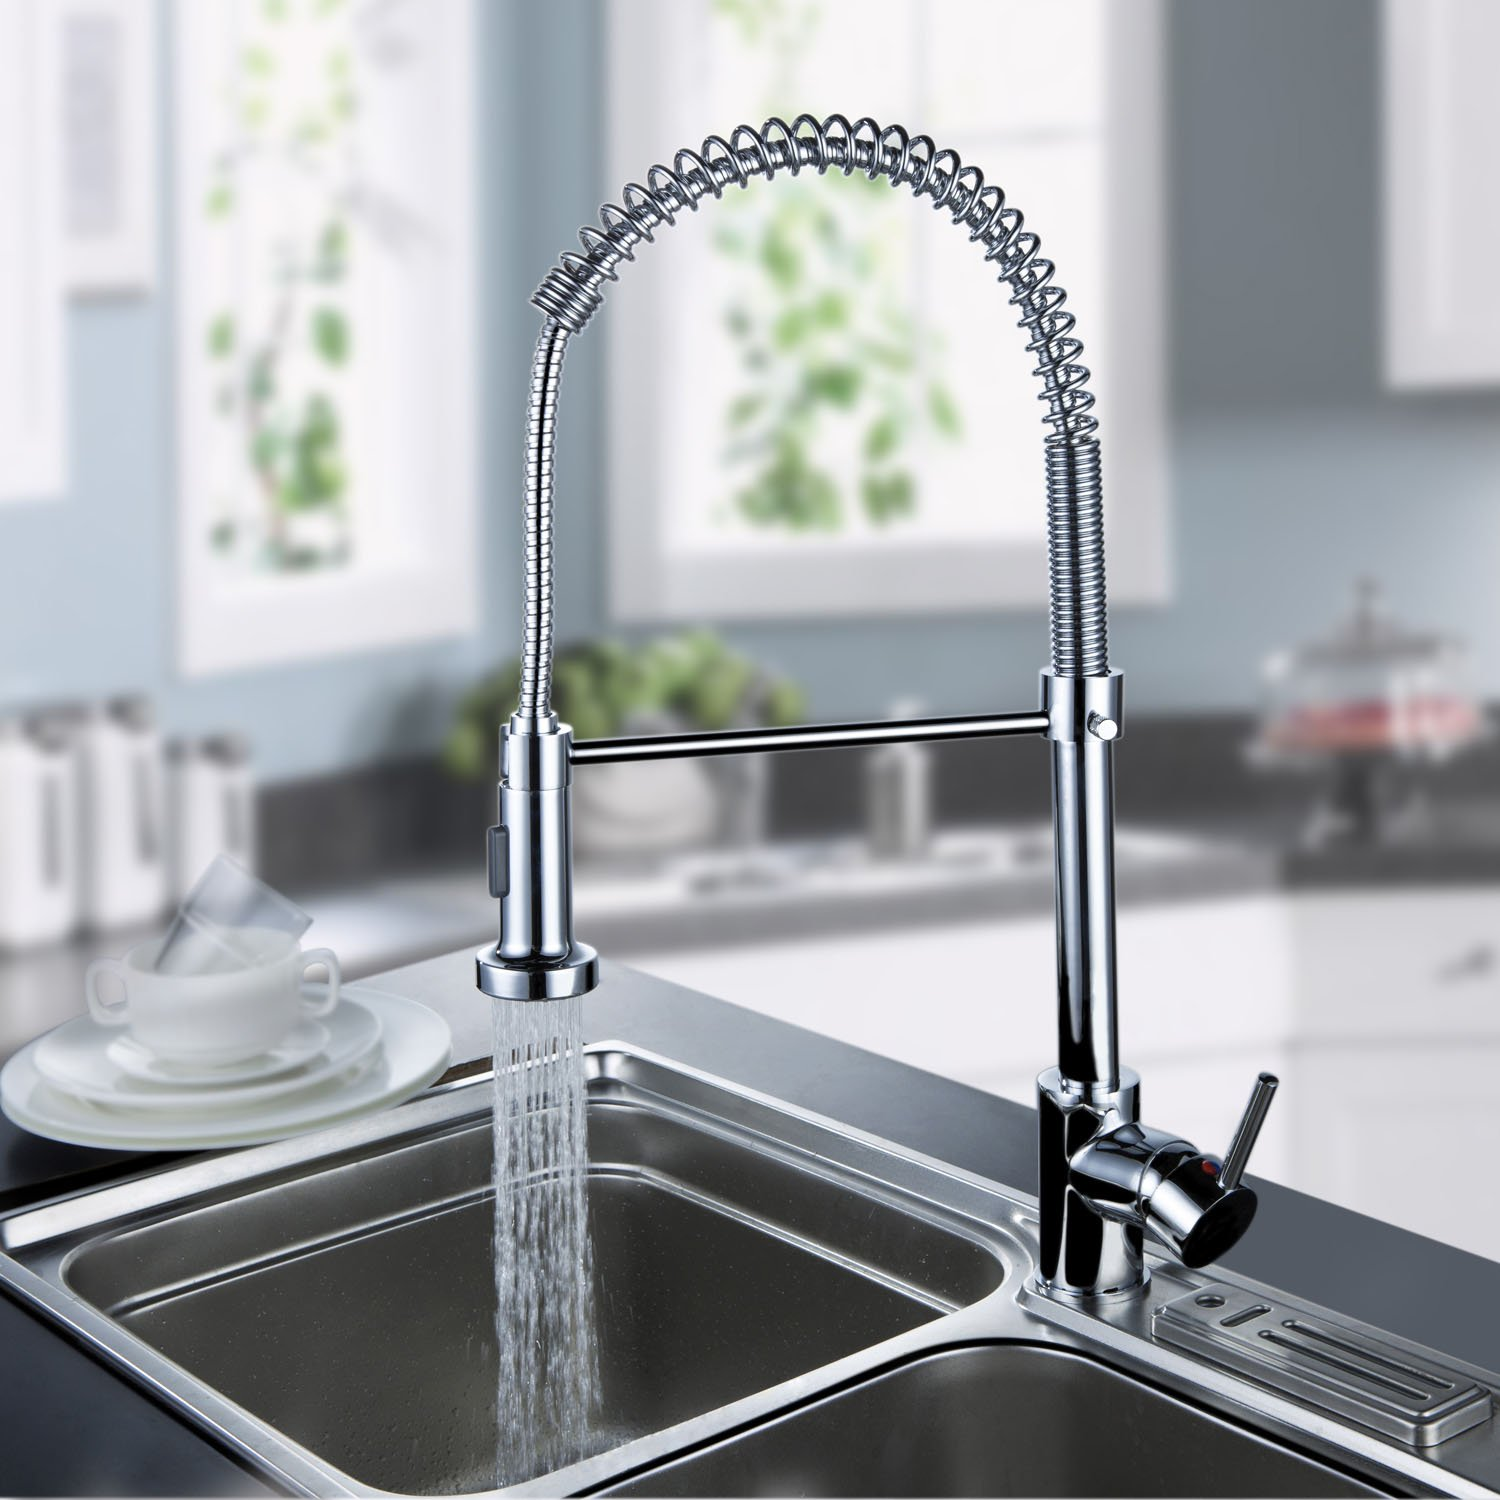 Lightinthebox Deck Mount Contemporary Spring Kitchen Sink Faucet Chrome  Tall Curve Spout Bar Faucets Single Hole Kitchen Basin Faucets With Pull  Out Led ...